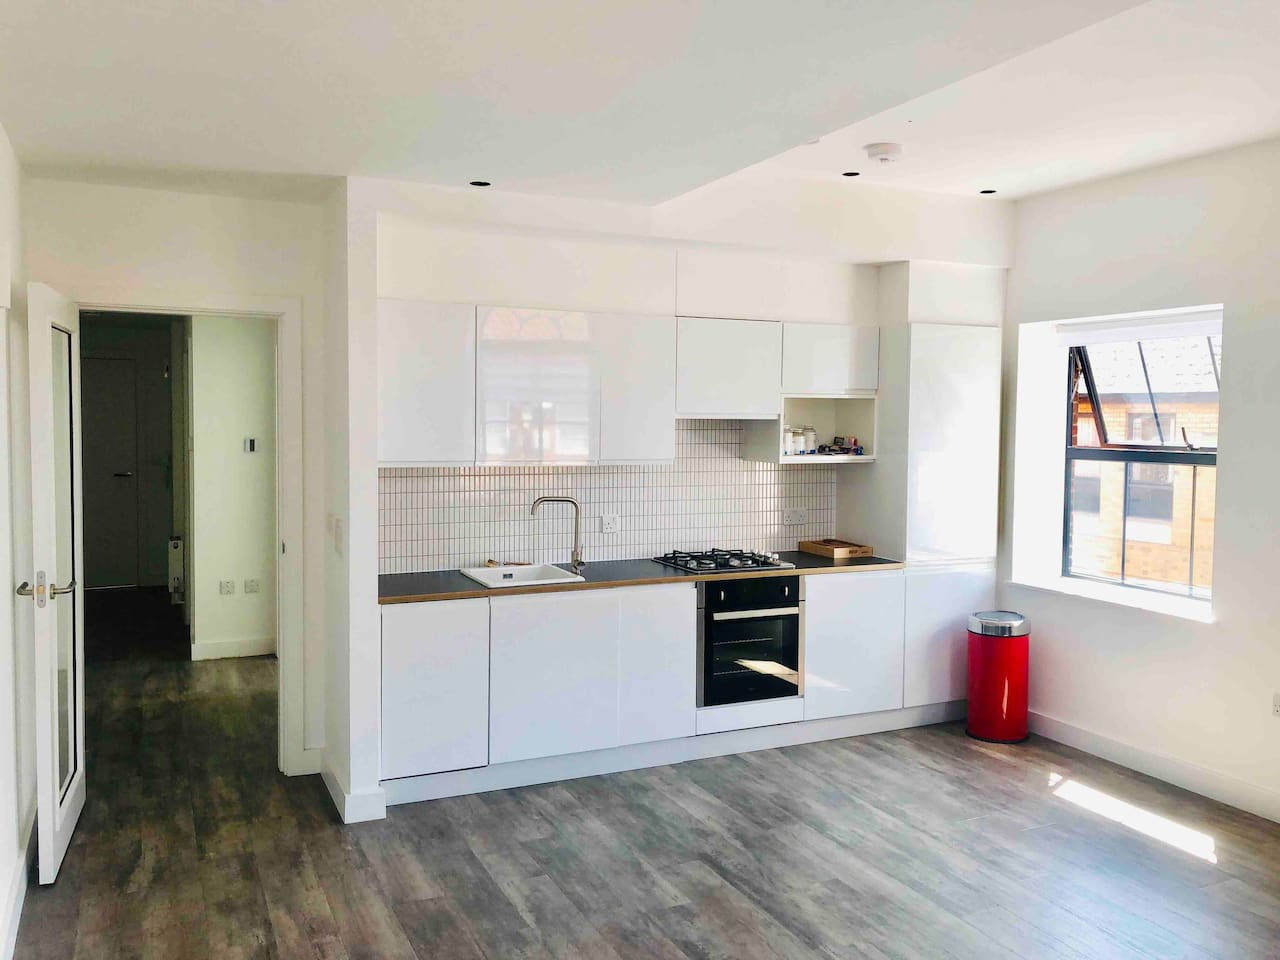 Large, bright and spacious open plan kitchen with a view over the center of Oxford.